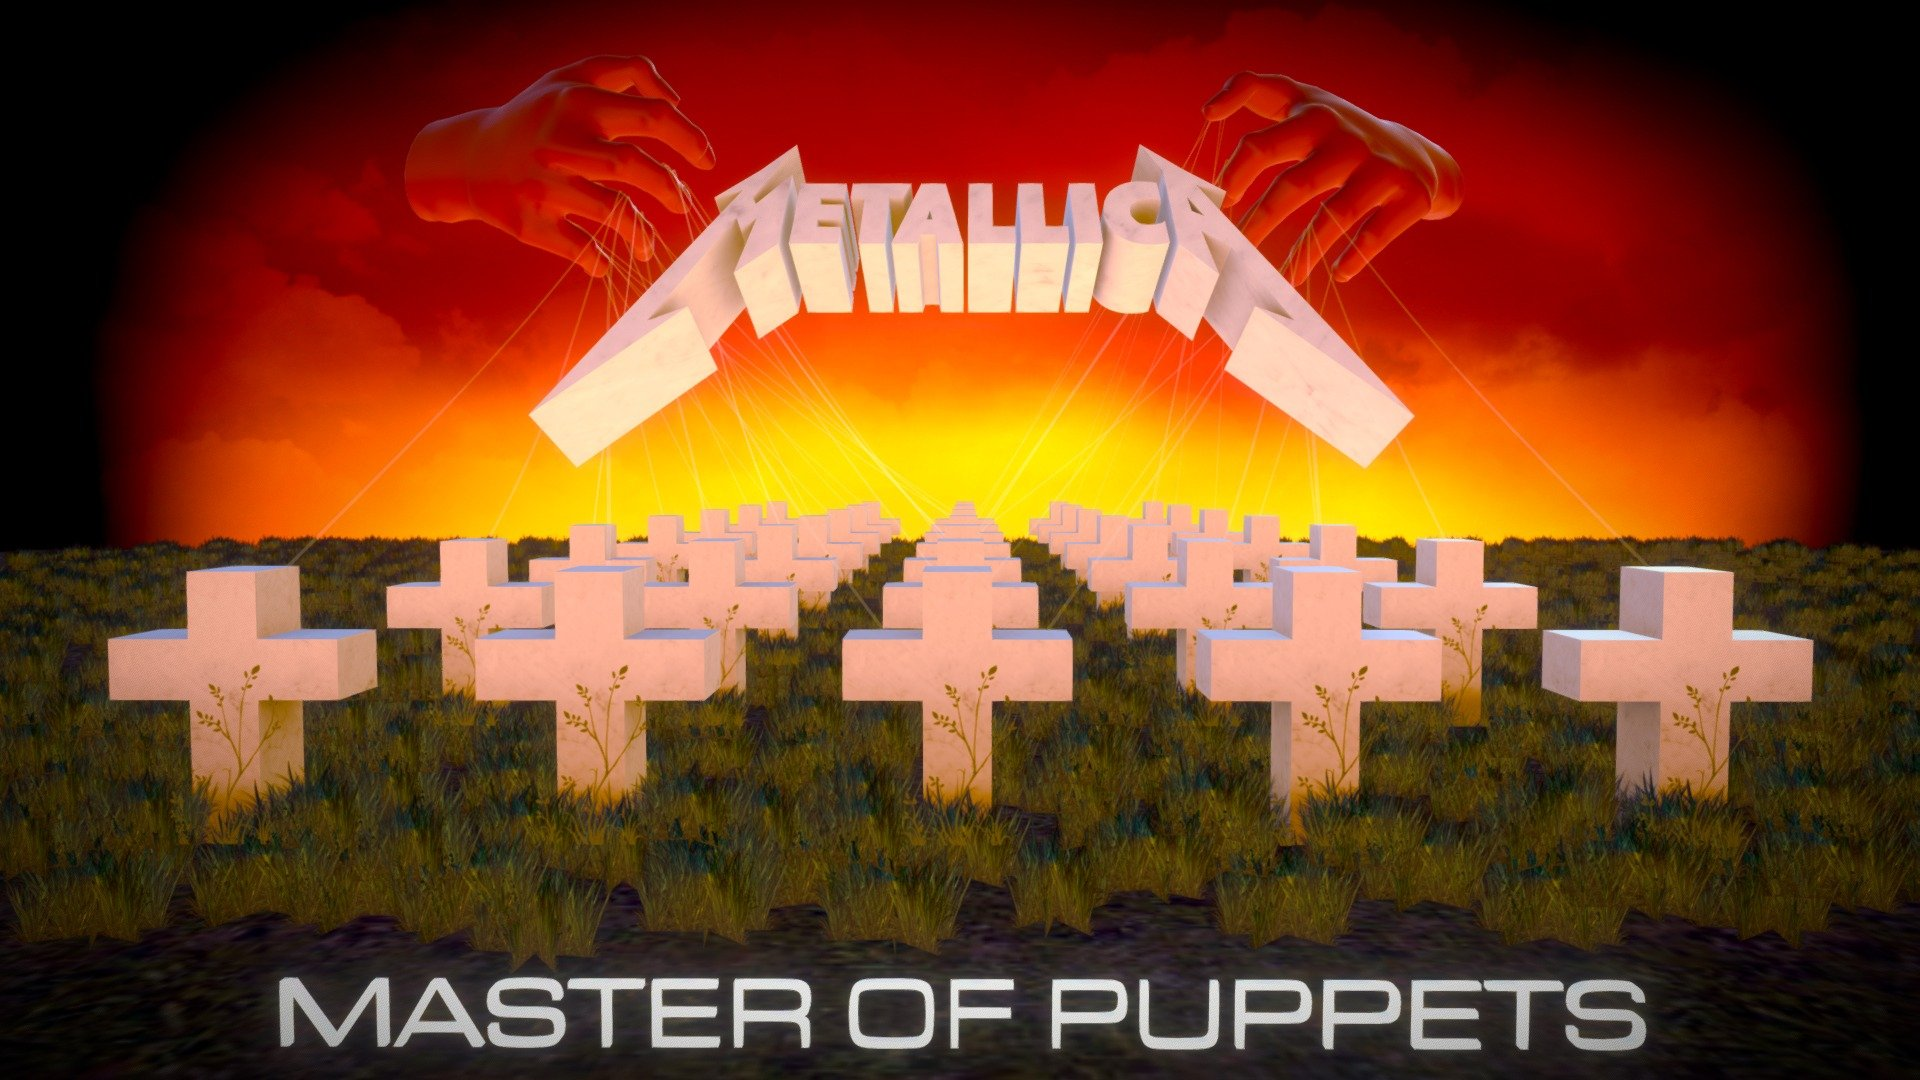 Metallica Master Of Puppets Album Cover 3d Model By